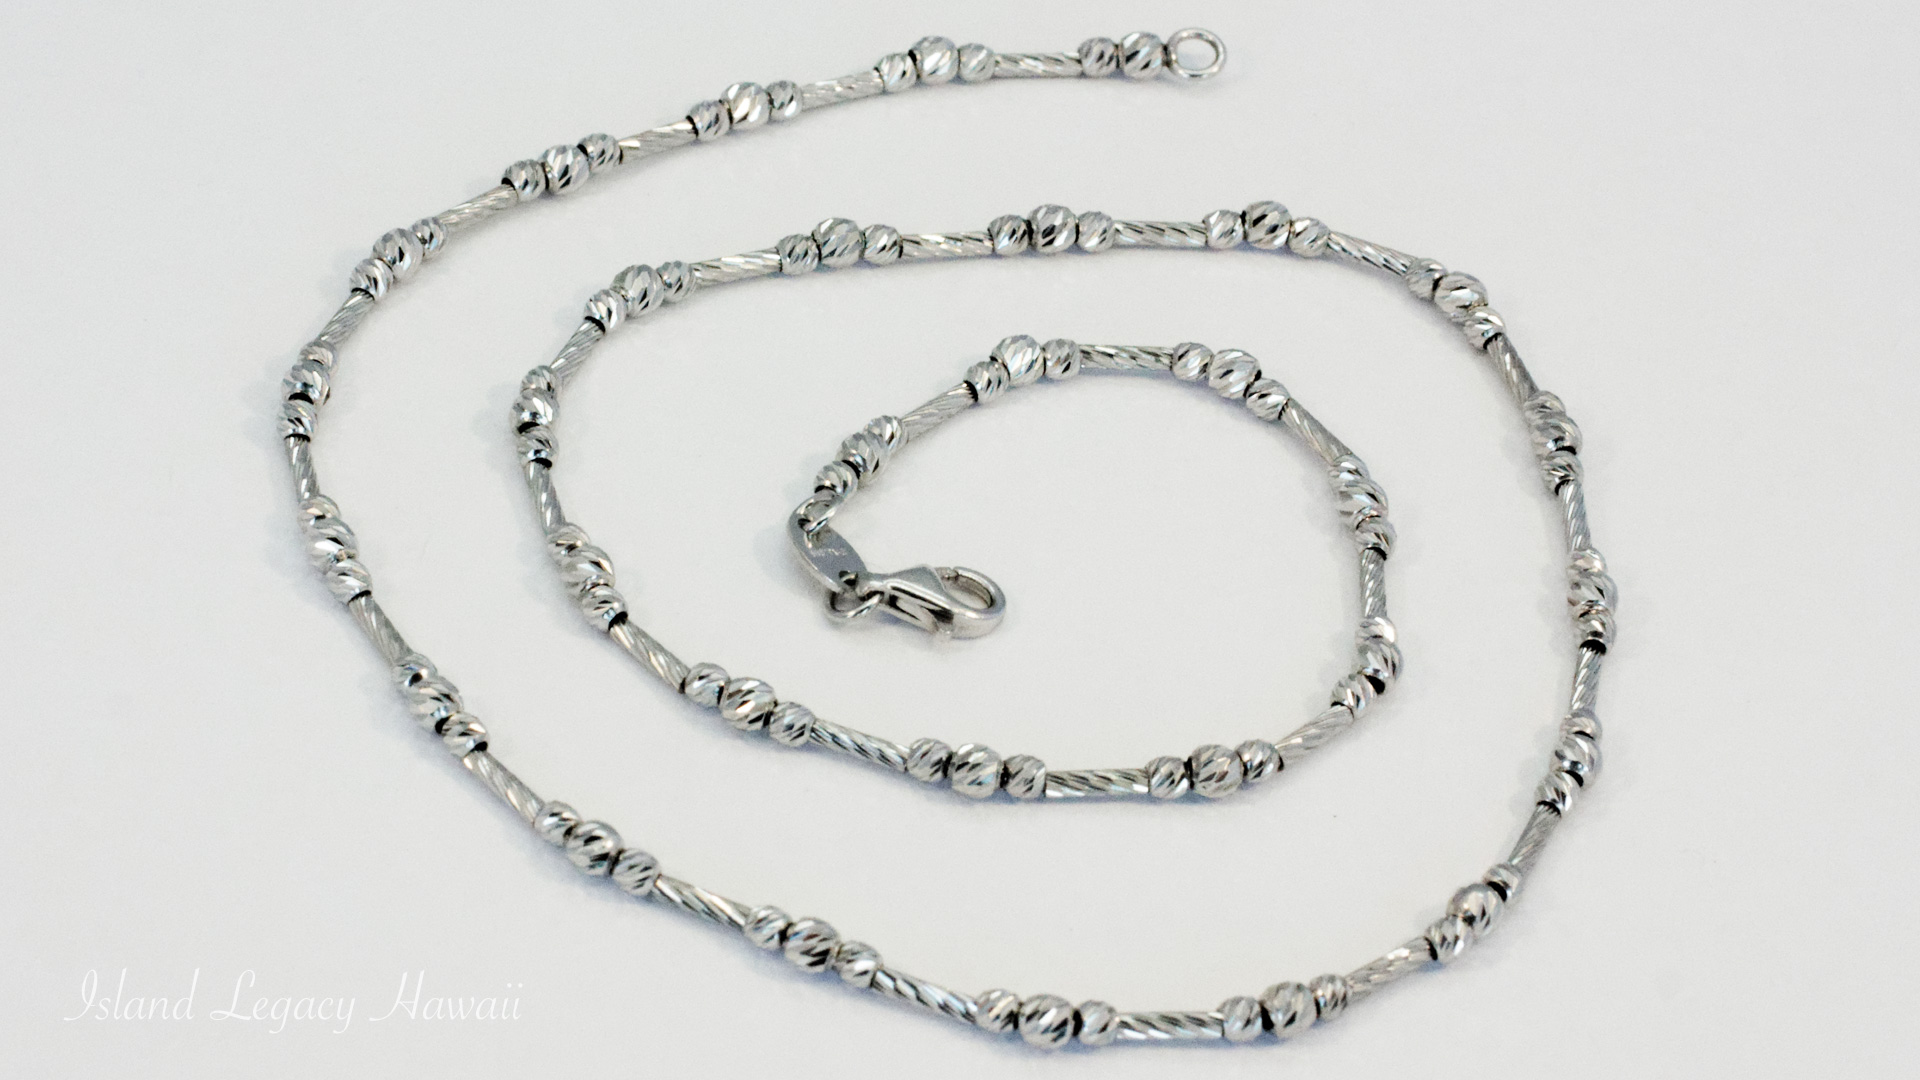 """The perfect chain in 14K white and rose gold, 16 – 18"""" long, 96 full-cut diamonds equaling 0.35 cts. #KNK1199D5 11/6"""